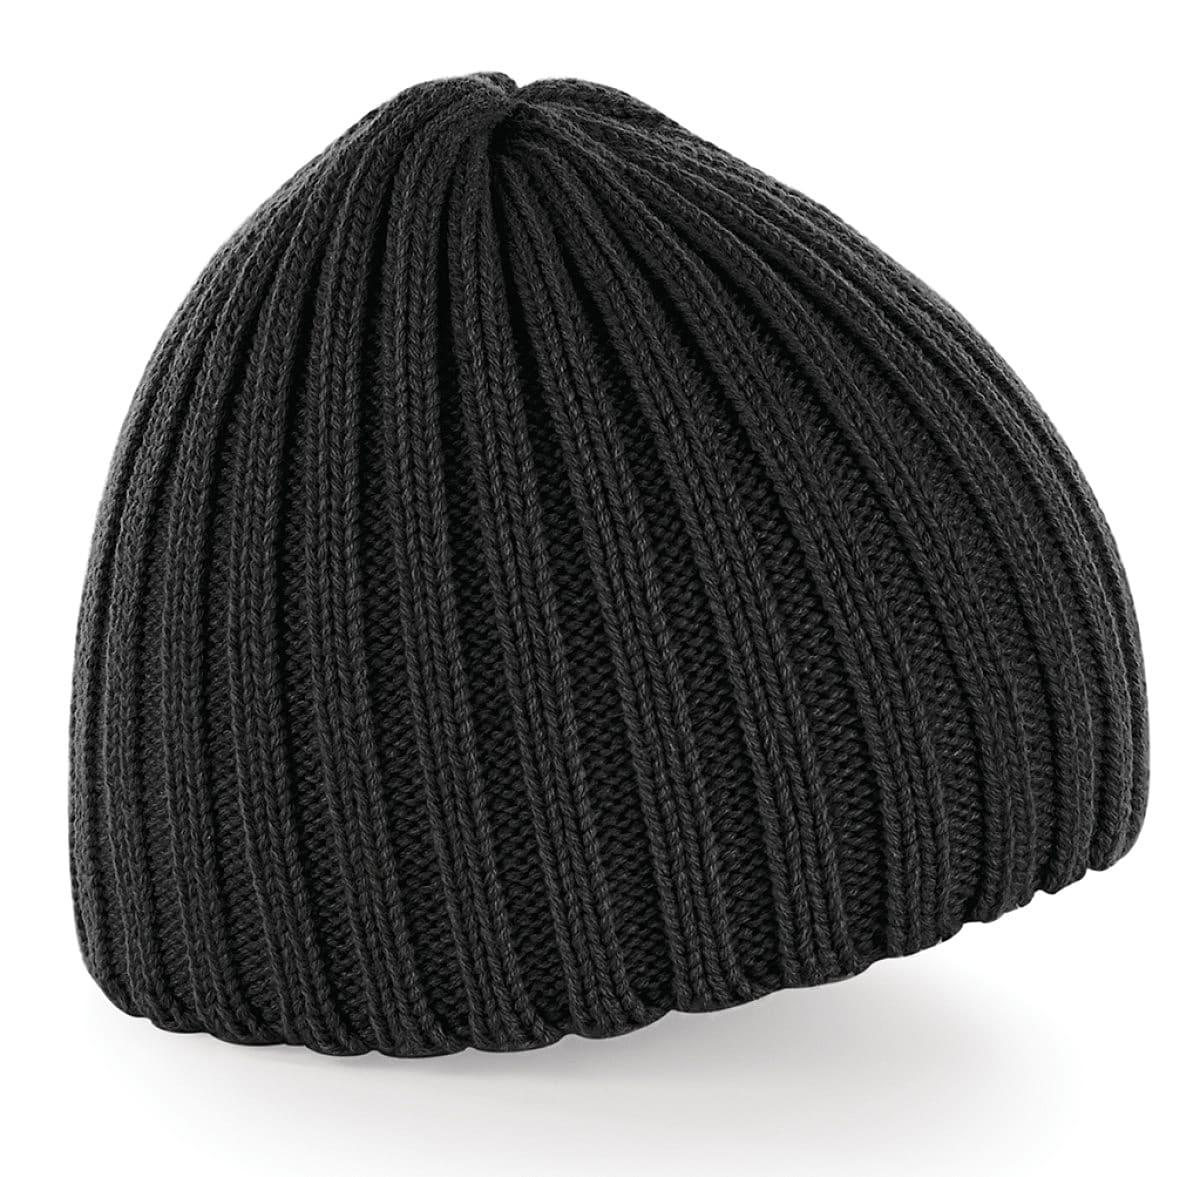 Beechfield Chunky Knit Beanie Hat in Black (Product Code: B462)